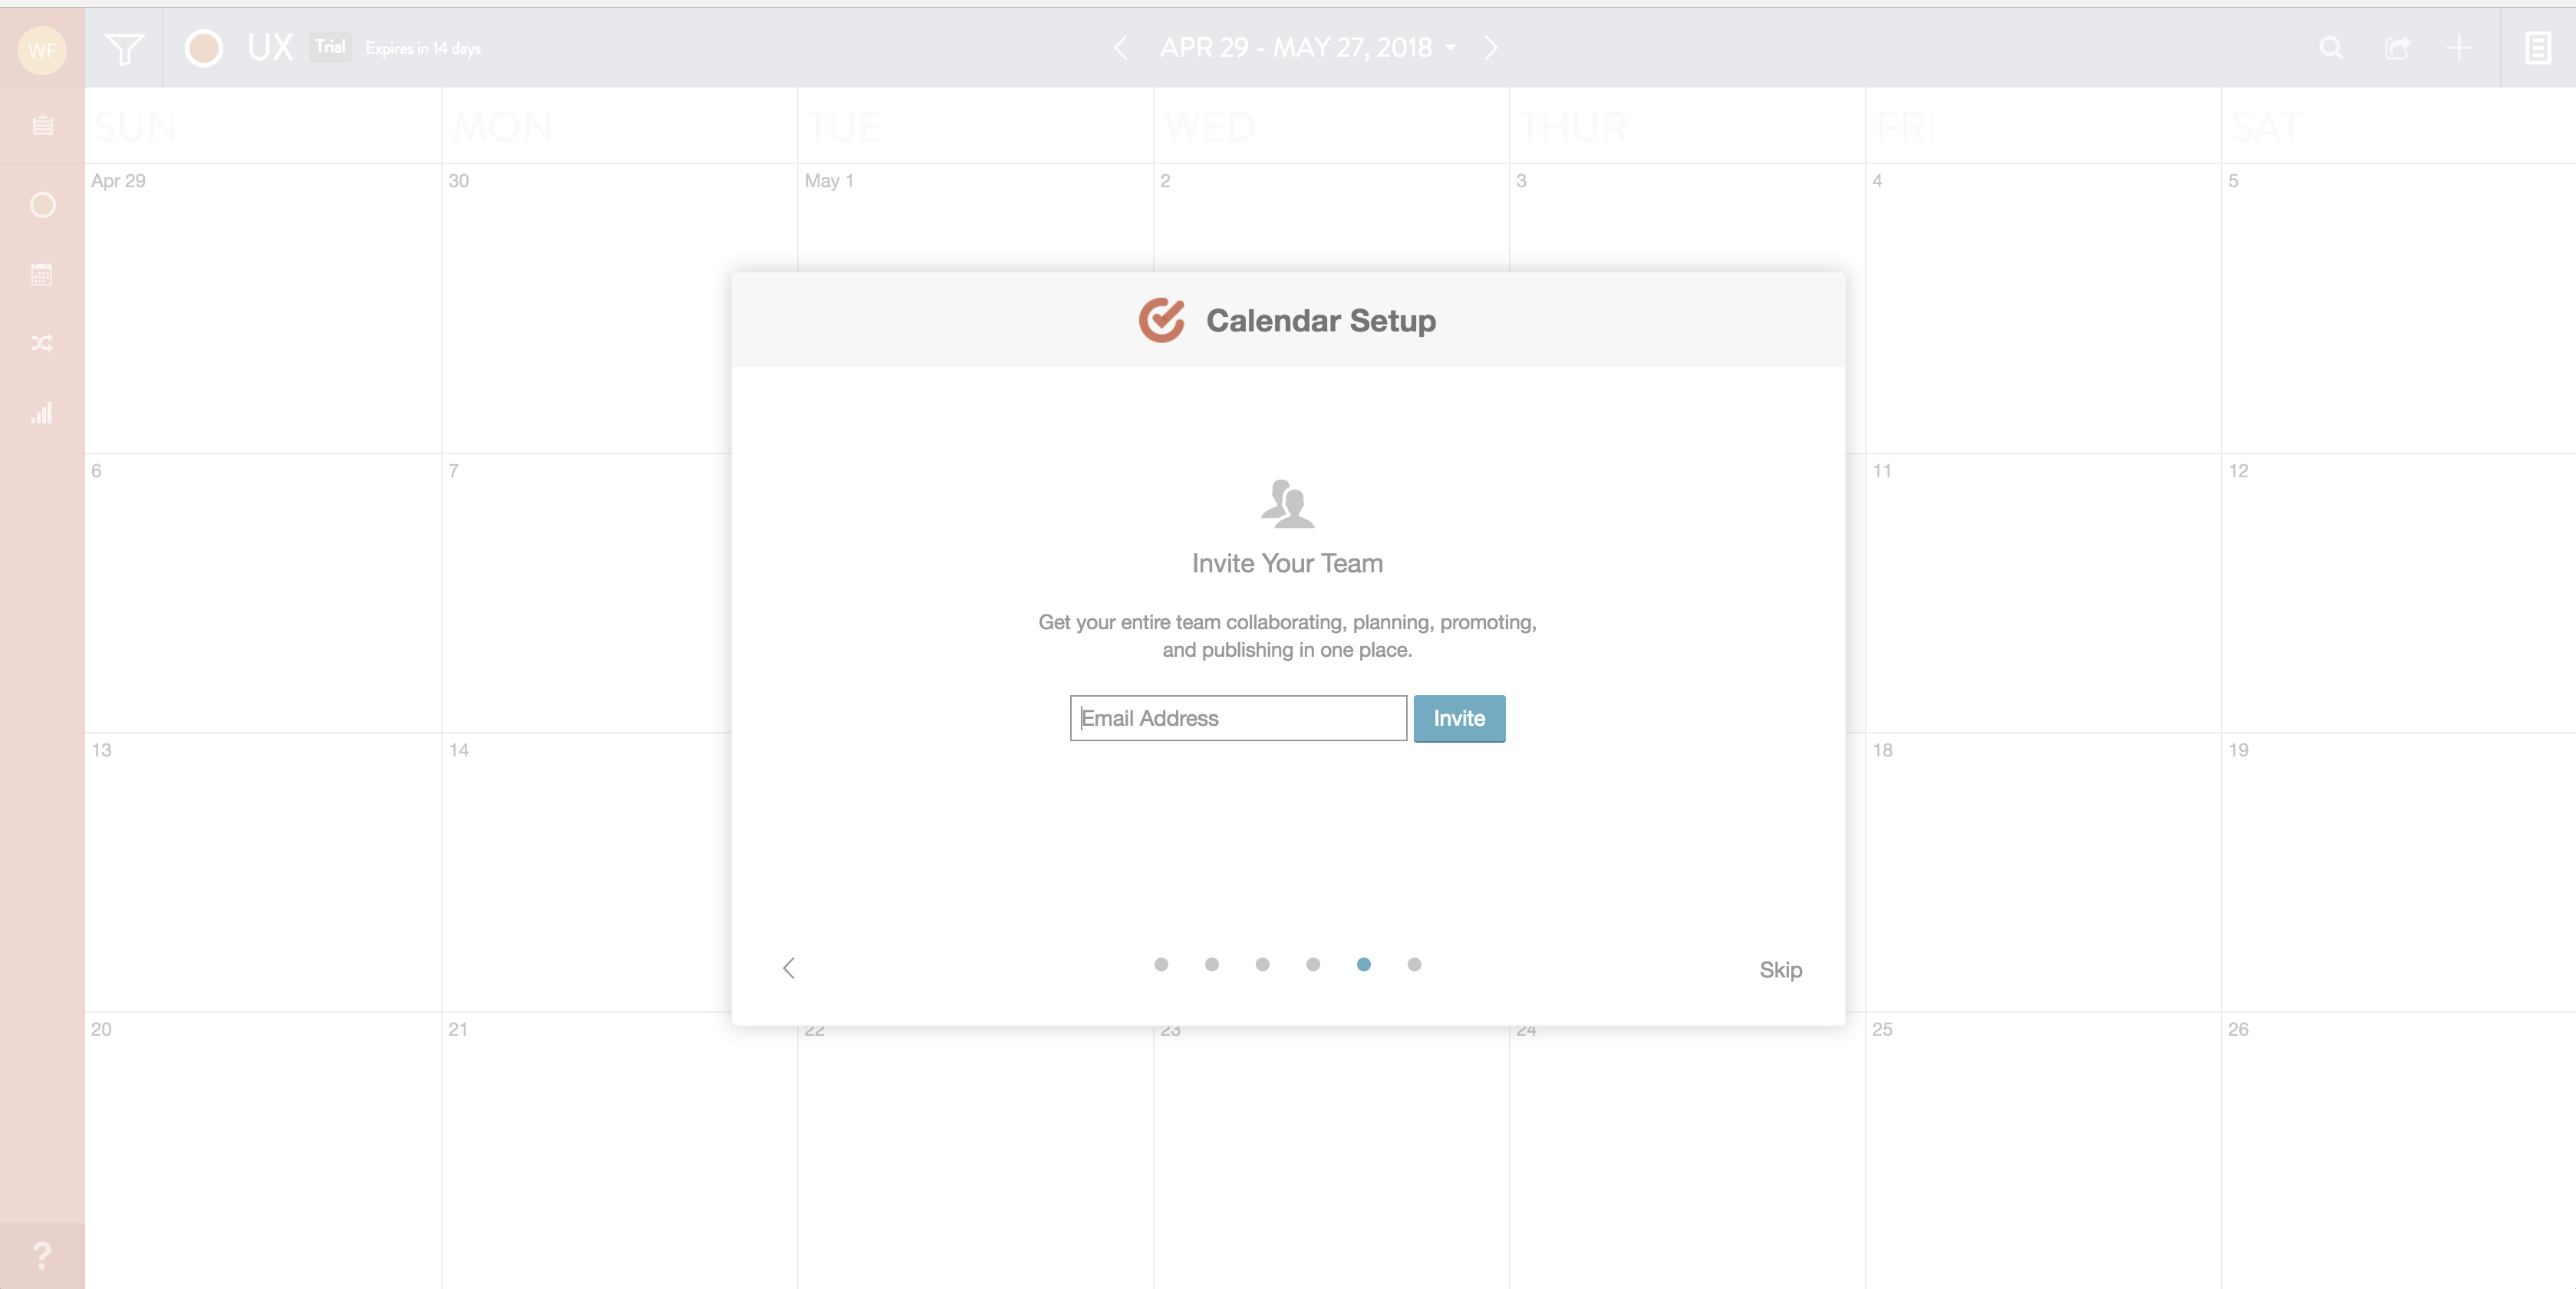 This is a screenshot of a modal onboarding sequence from coschedule. The title of the modal is Calendar Setup and there is a prompt to invite teammates